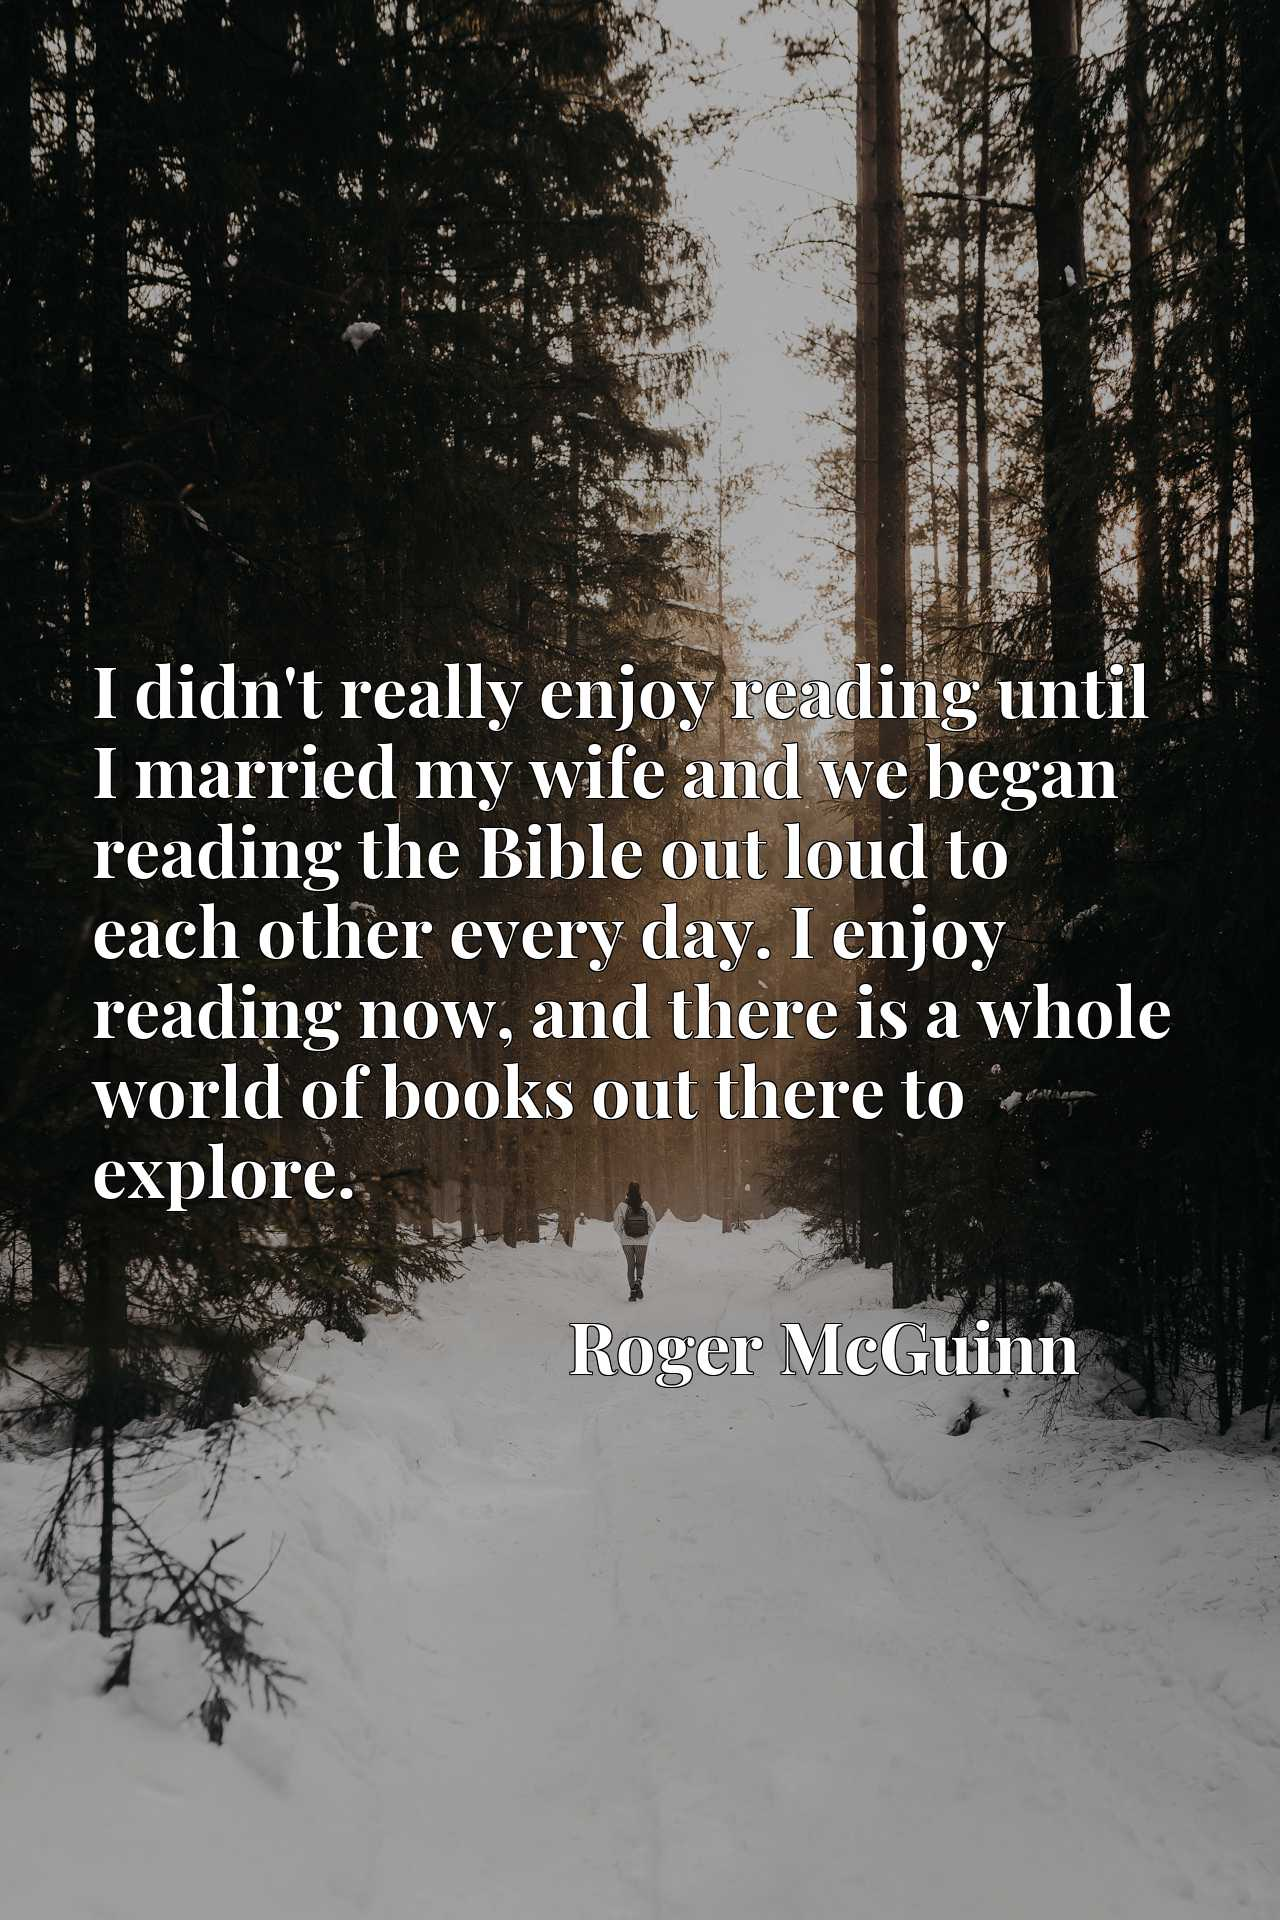 I didn't really enjoy reading until I married my wife and we began reading the Bible out loud to each other every day. I enjoy reading now, and there is a whole world of books out there to explore.